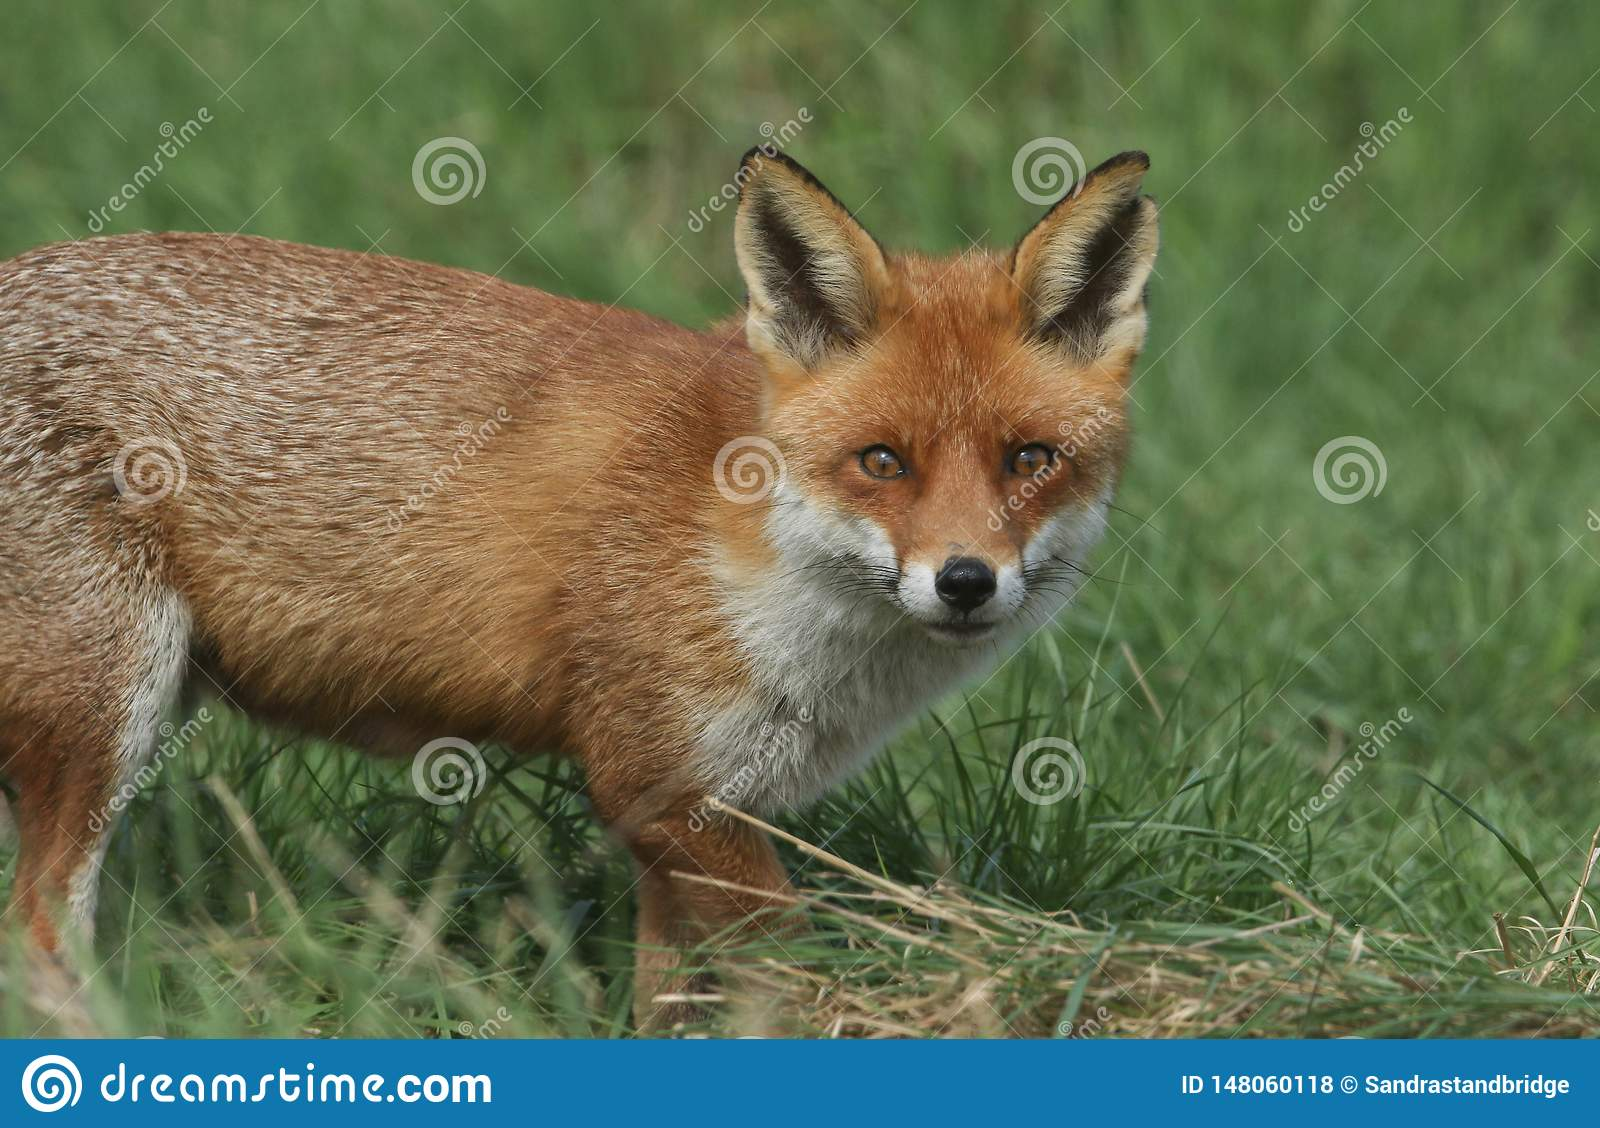 A magnificent wild Red Fox, Vulpes vulpes, hunting for food to eat in the long grass.